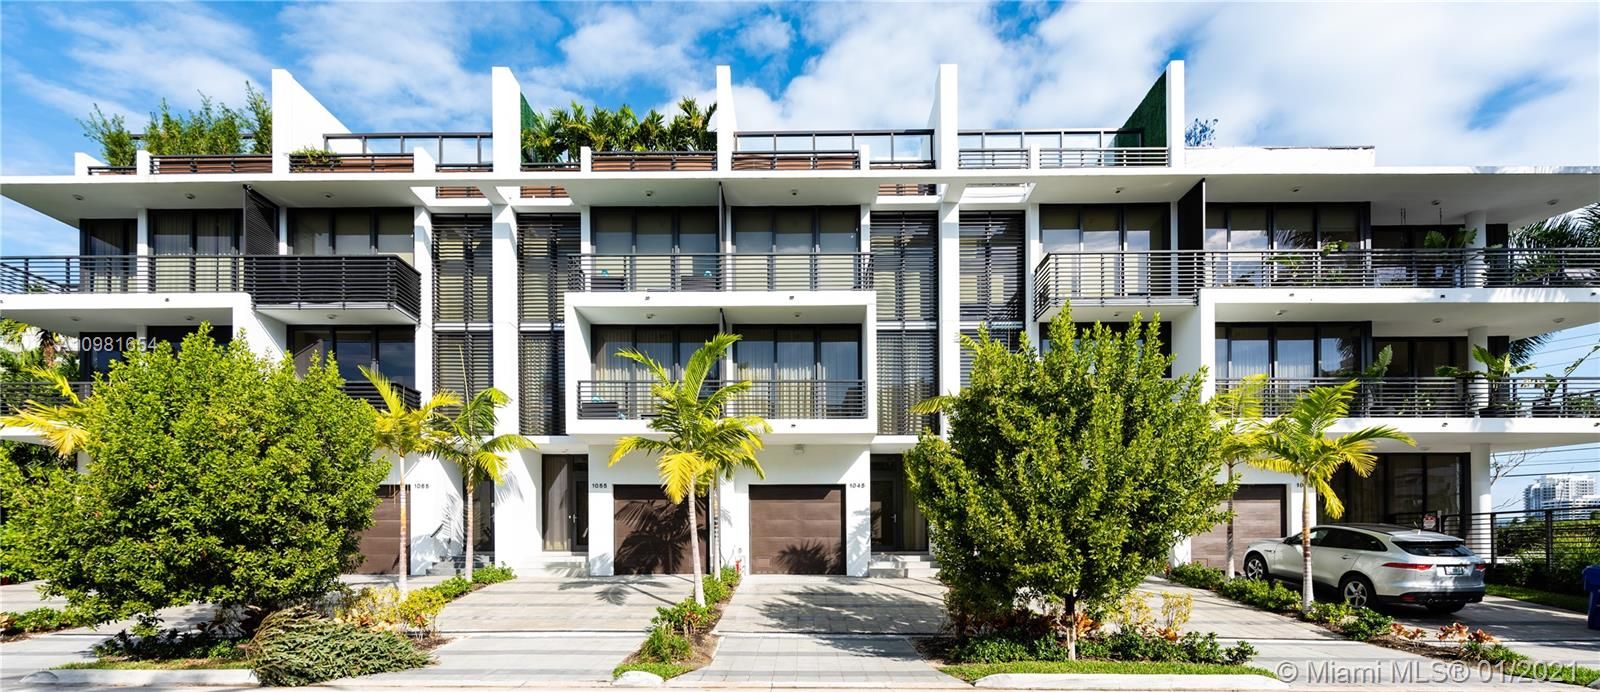 Modern townhome with it's own private rooftop pool. Designed using clean lines & incorporating